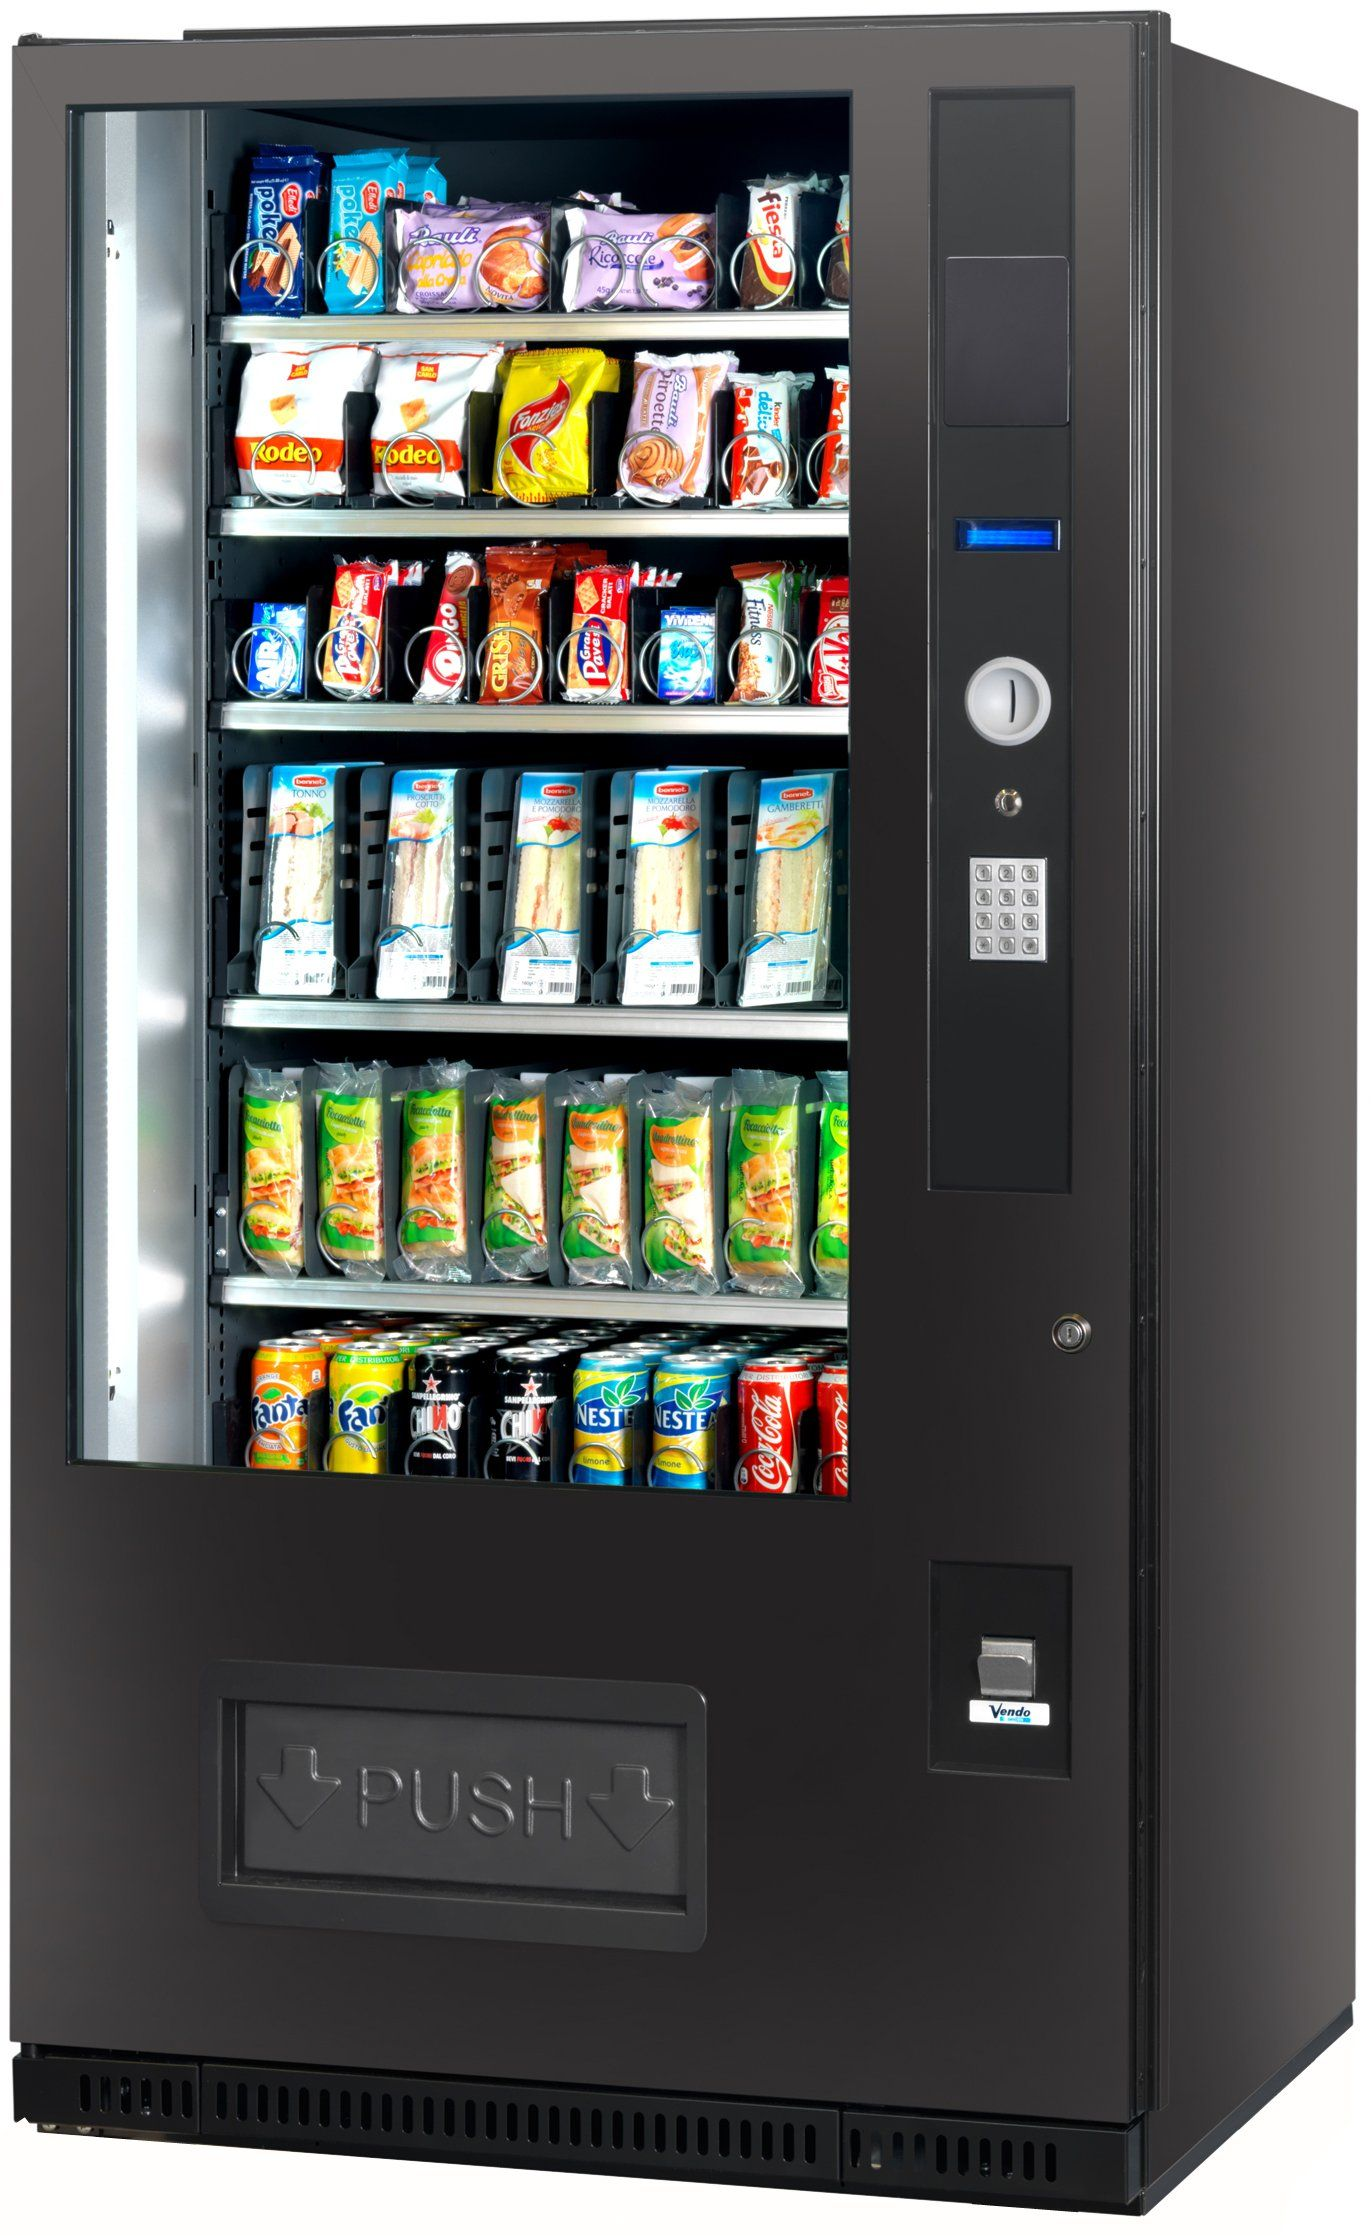 Buy Every Kind Of Drink From Vending Machines